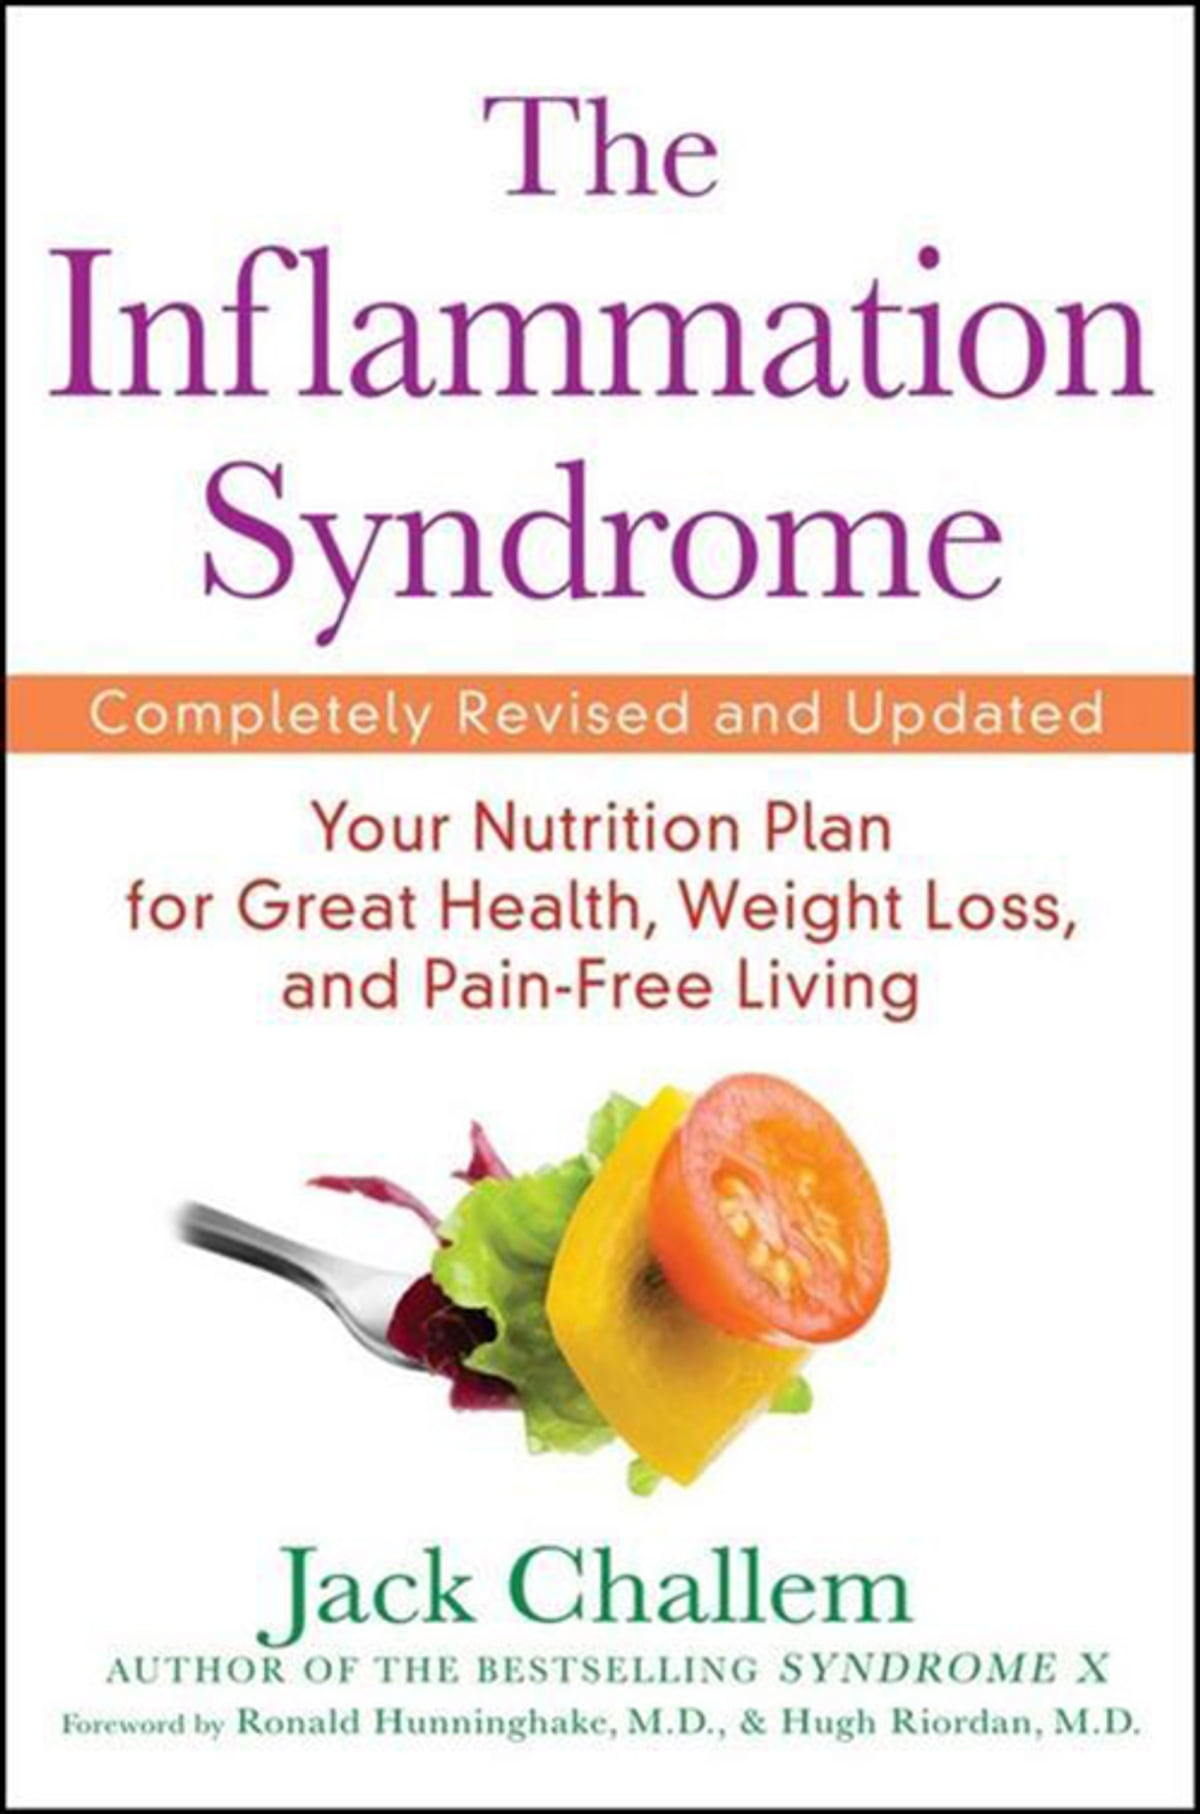 The inflammation syndrome ebook by jack challem 9780470559574 the inflammation syndrome ebook by jack challem 9780470559574 rakuten kobo fandeluxe PDF